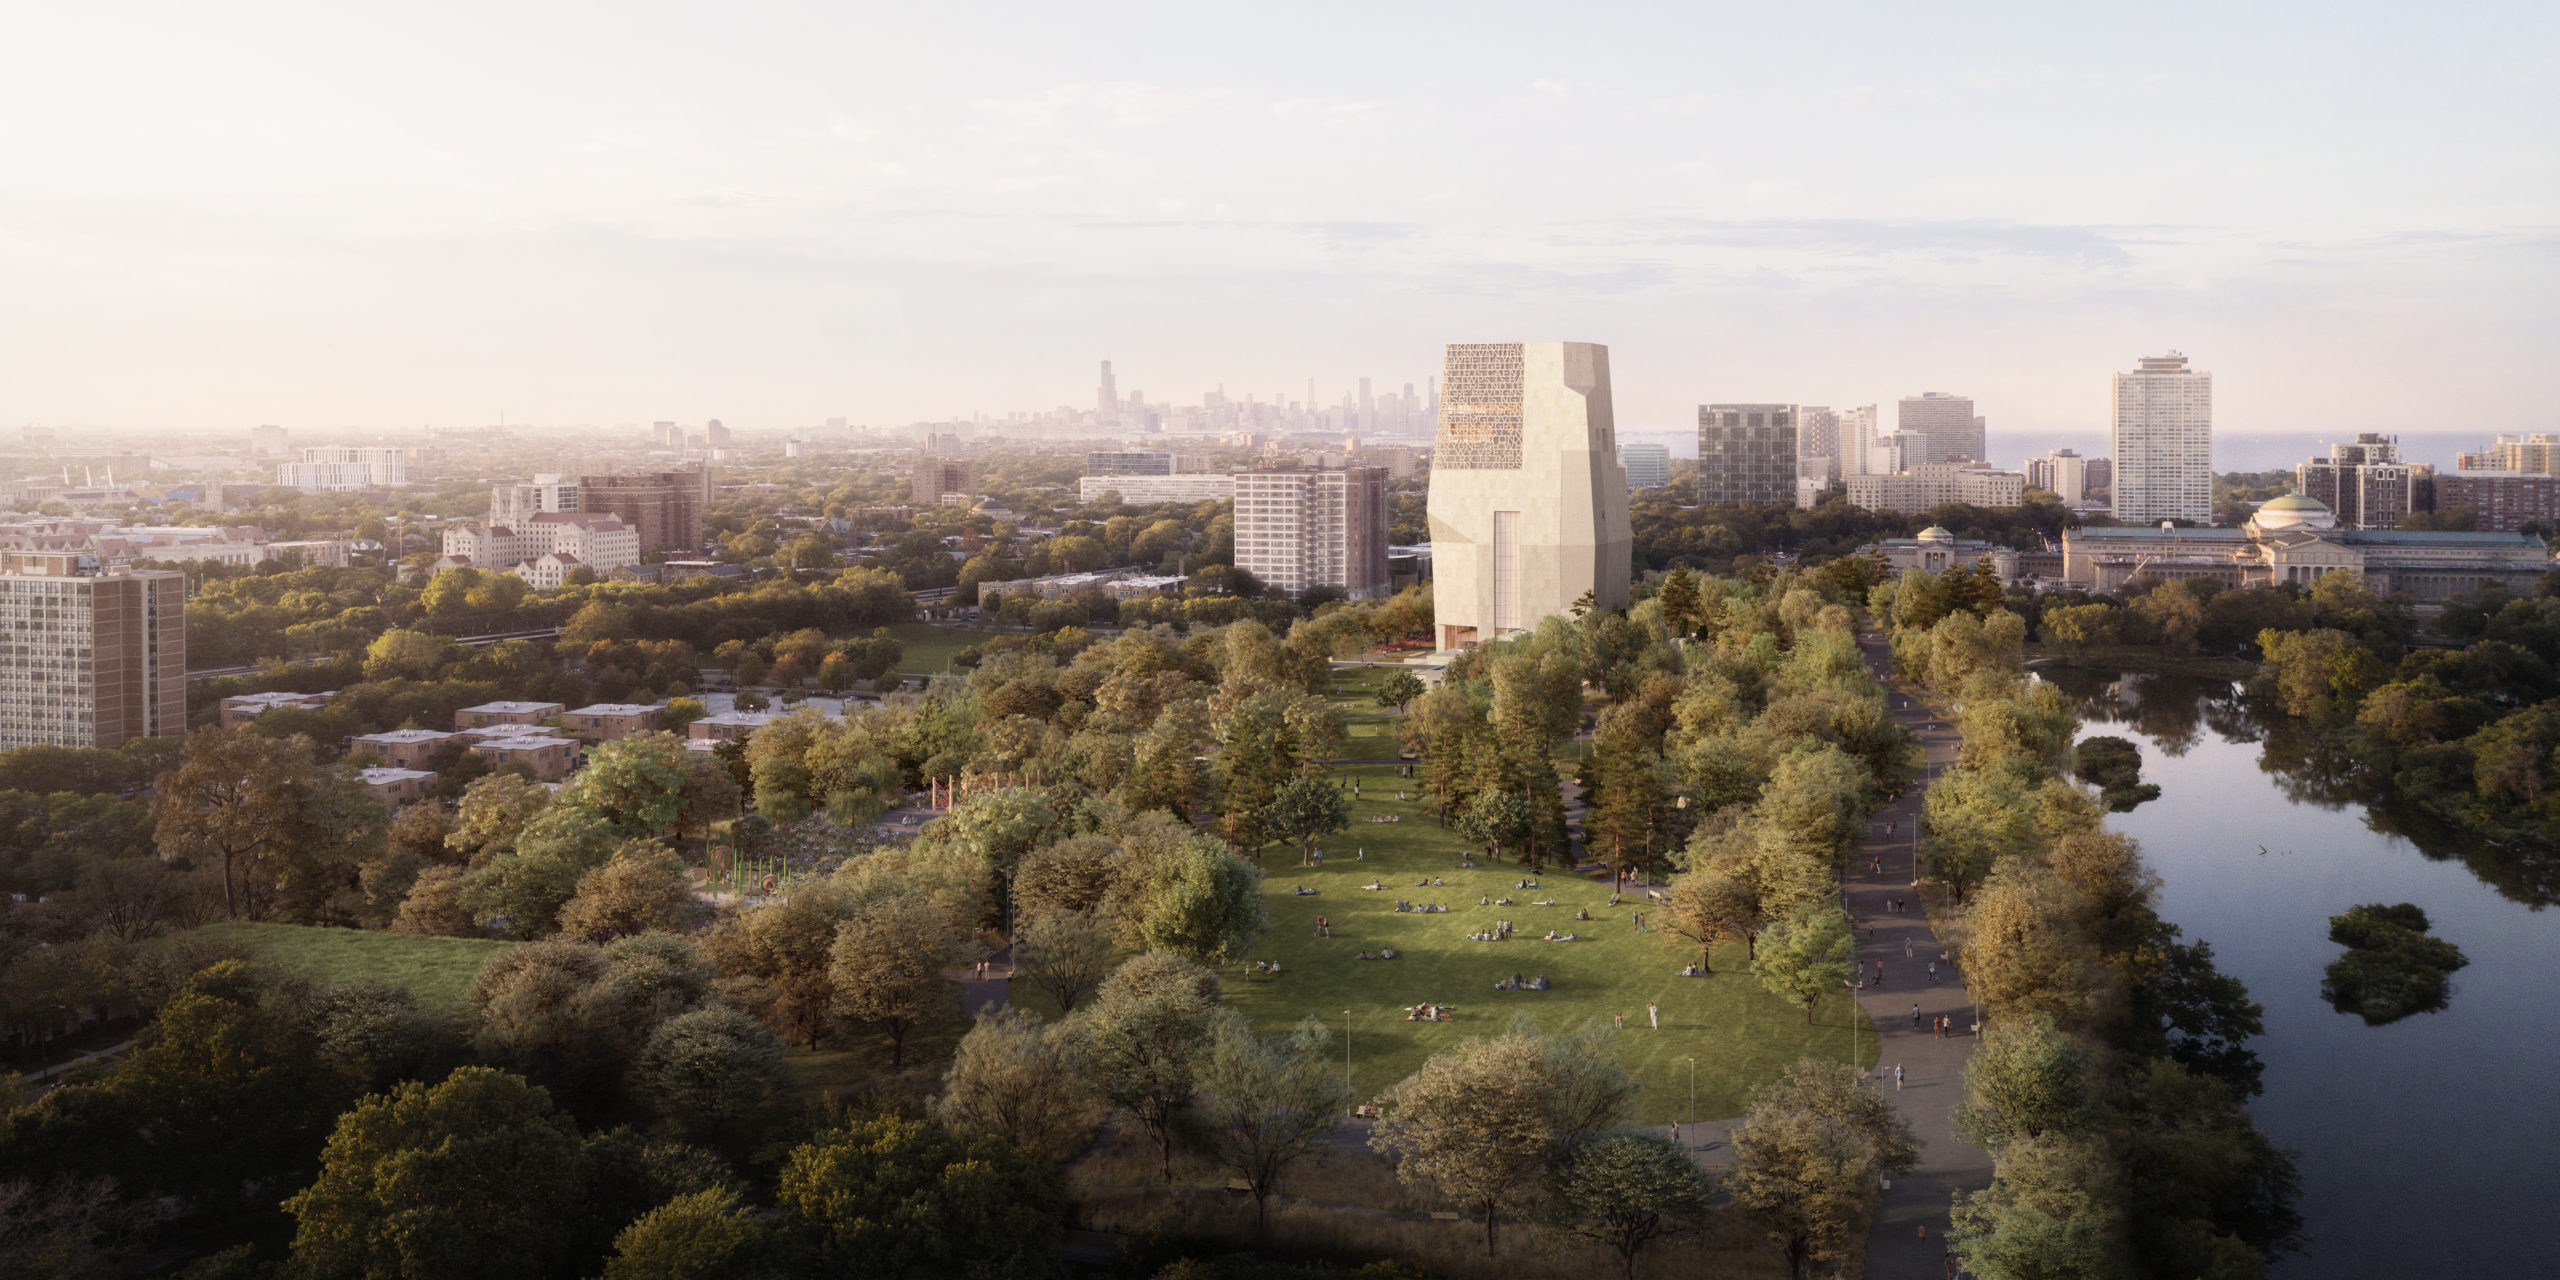 A rendering of the Obama Presidential Center campus.